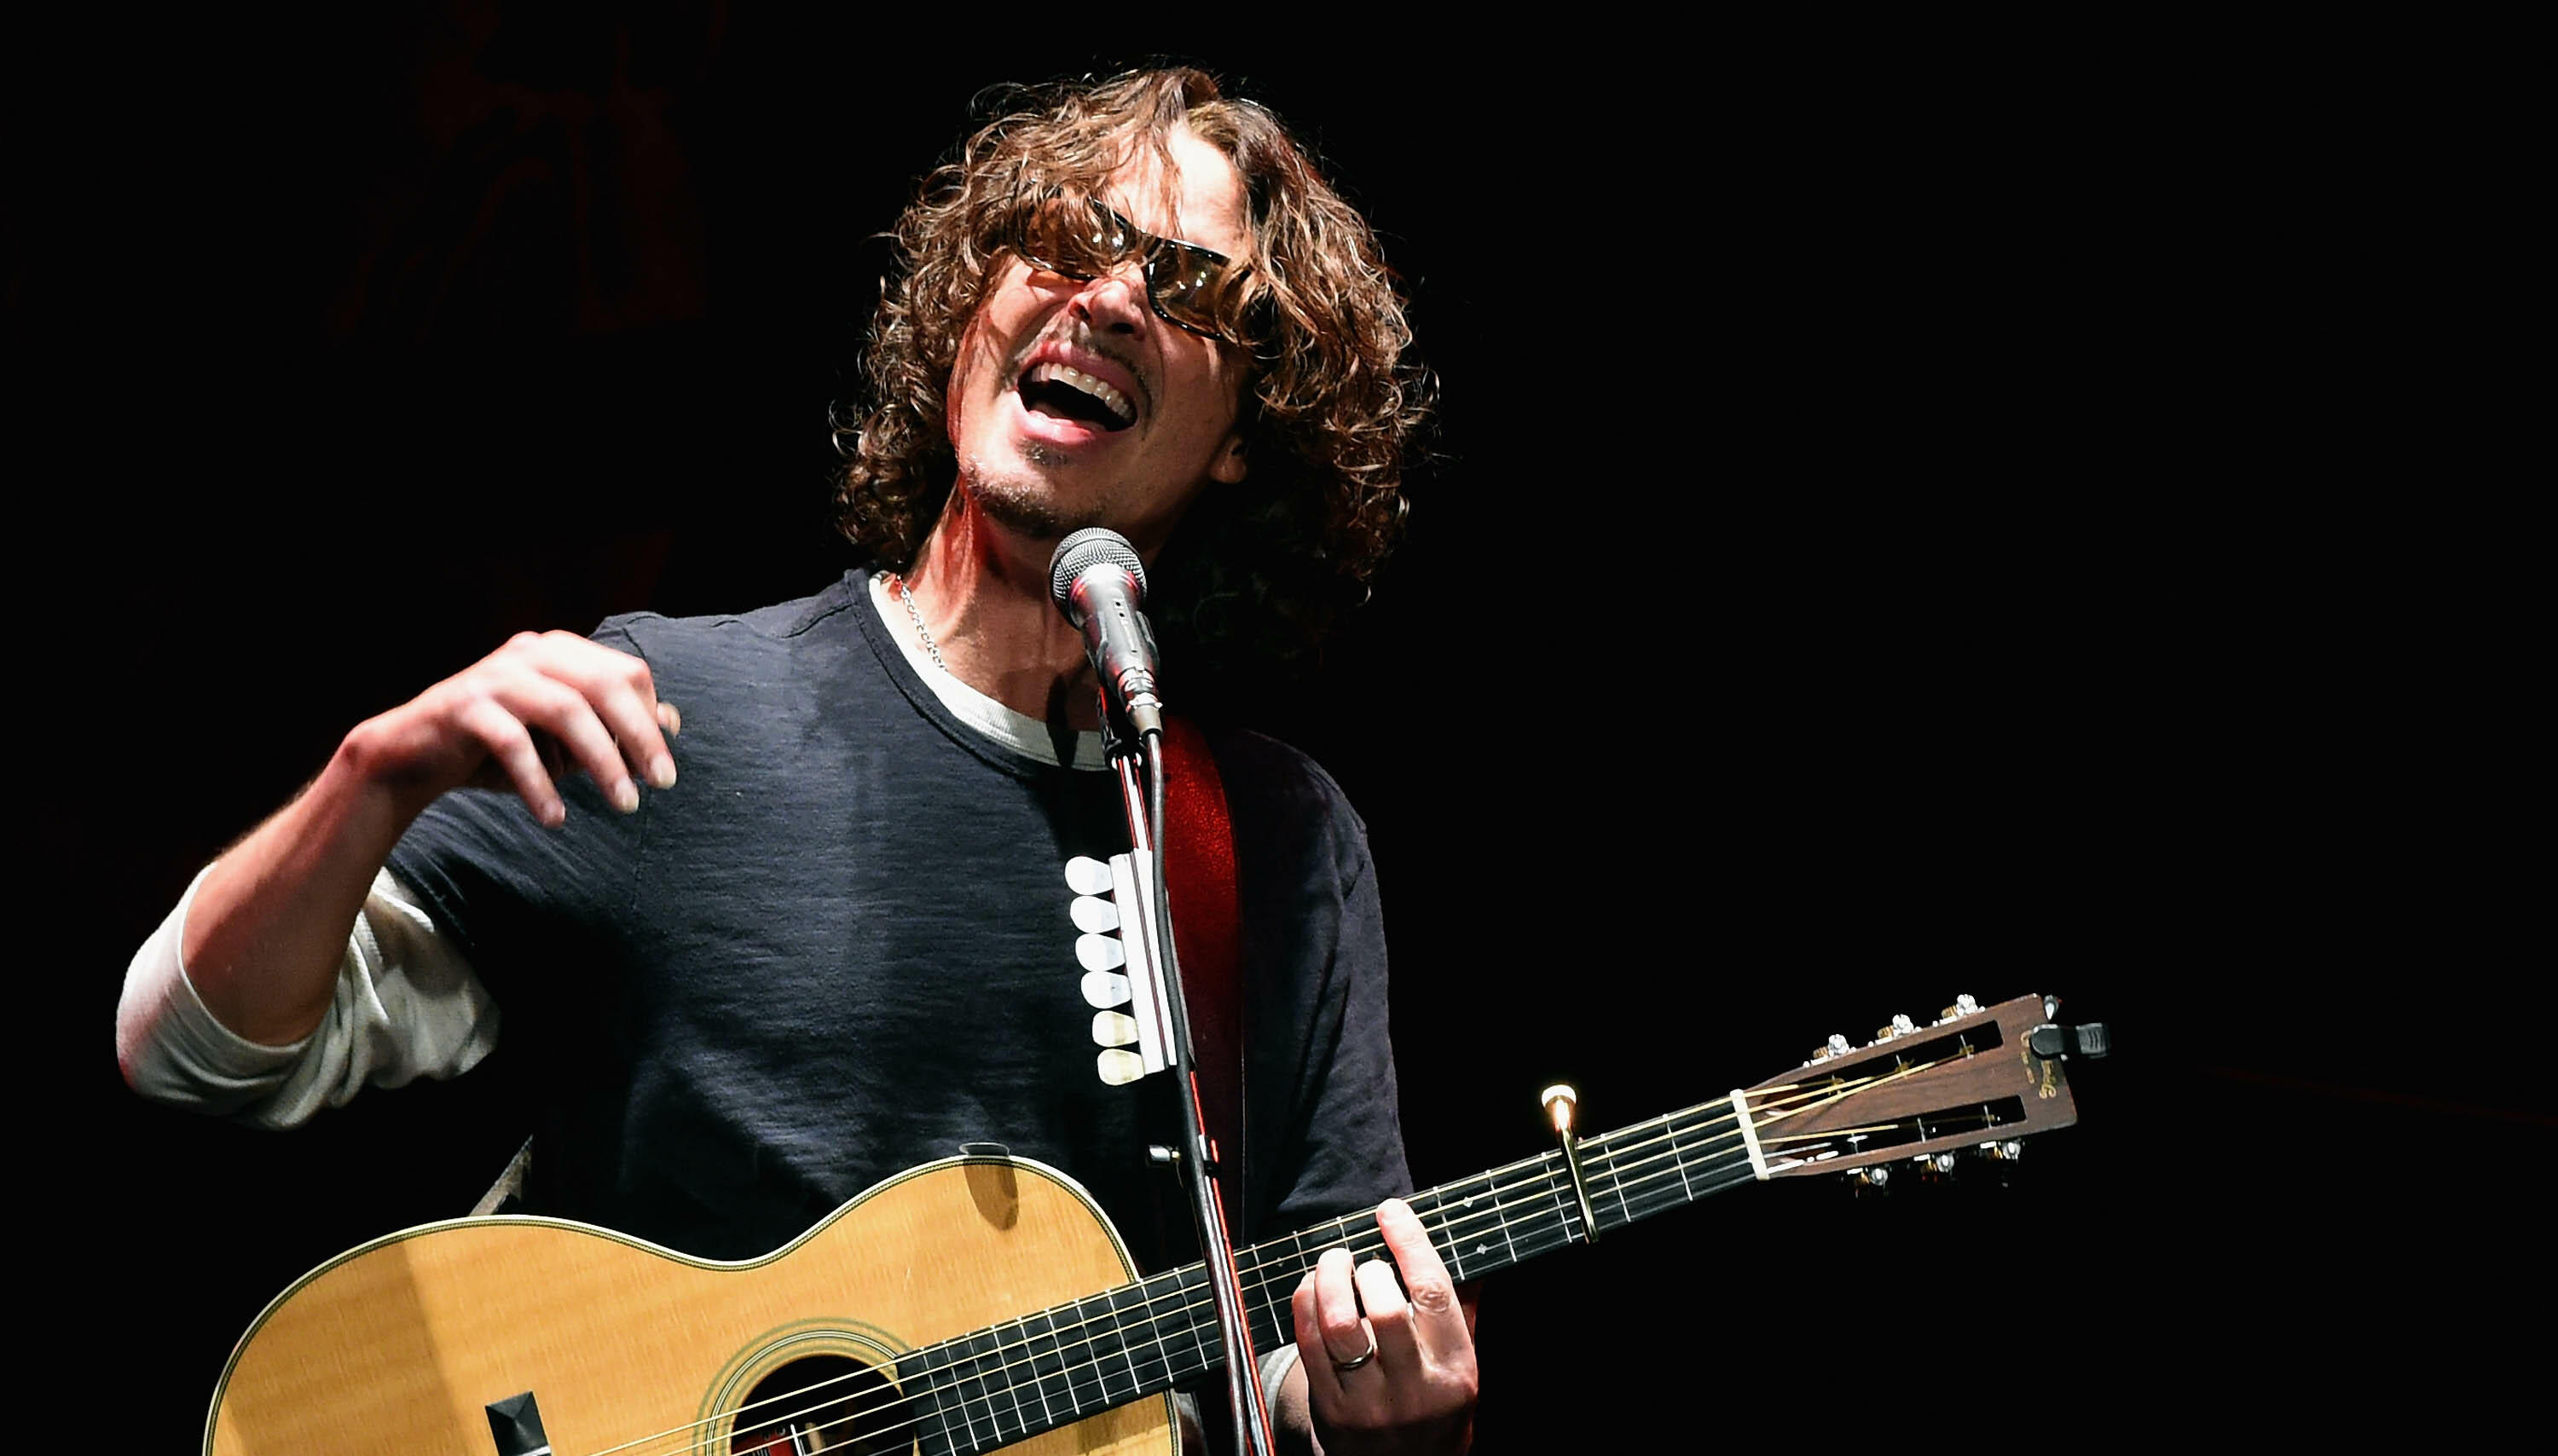 """Hear Chris Cornell's Mashup of """"One"""" by U2 and Metallica"""